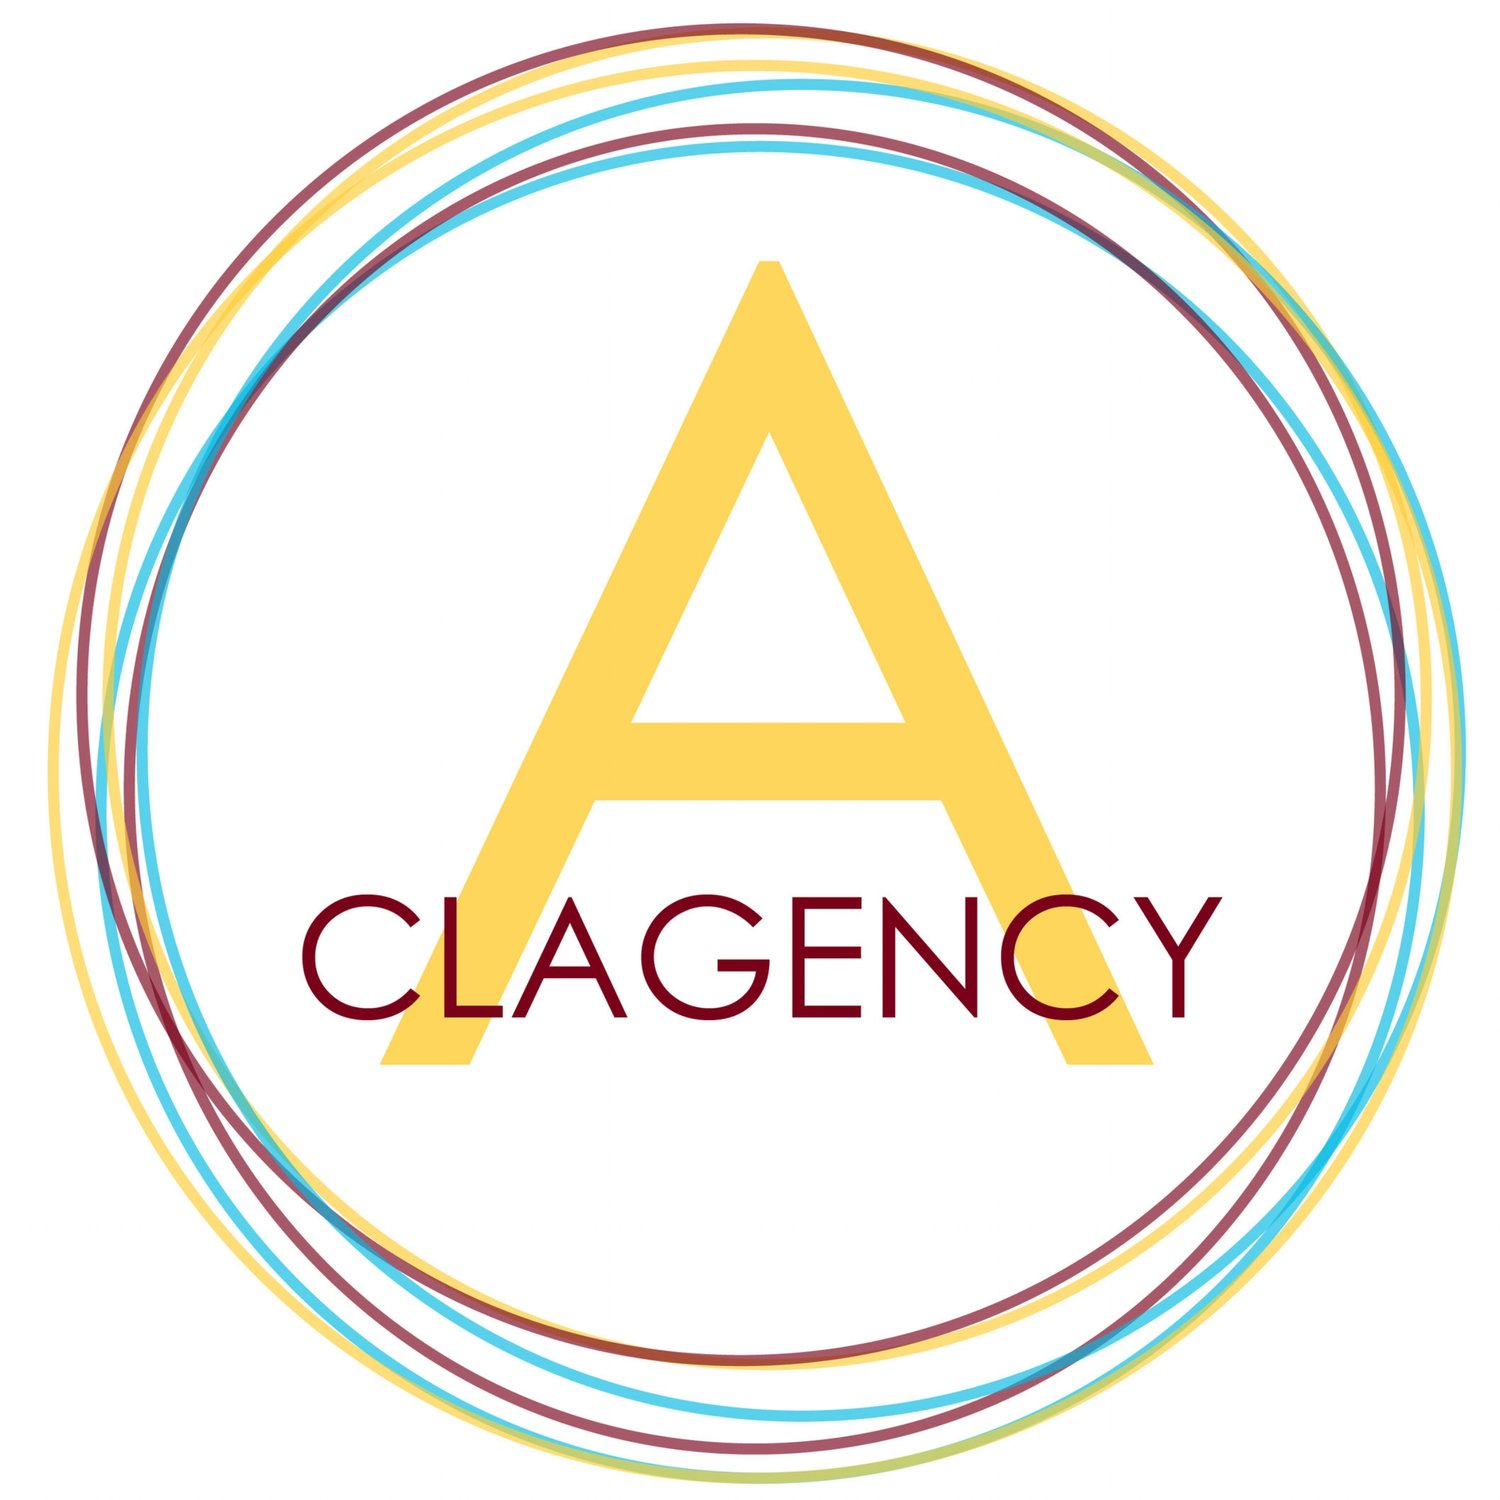 CLAgency